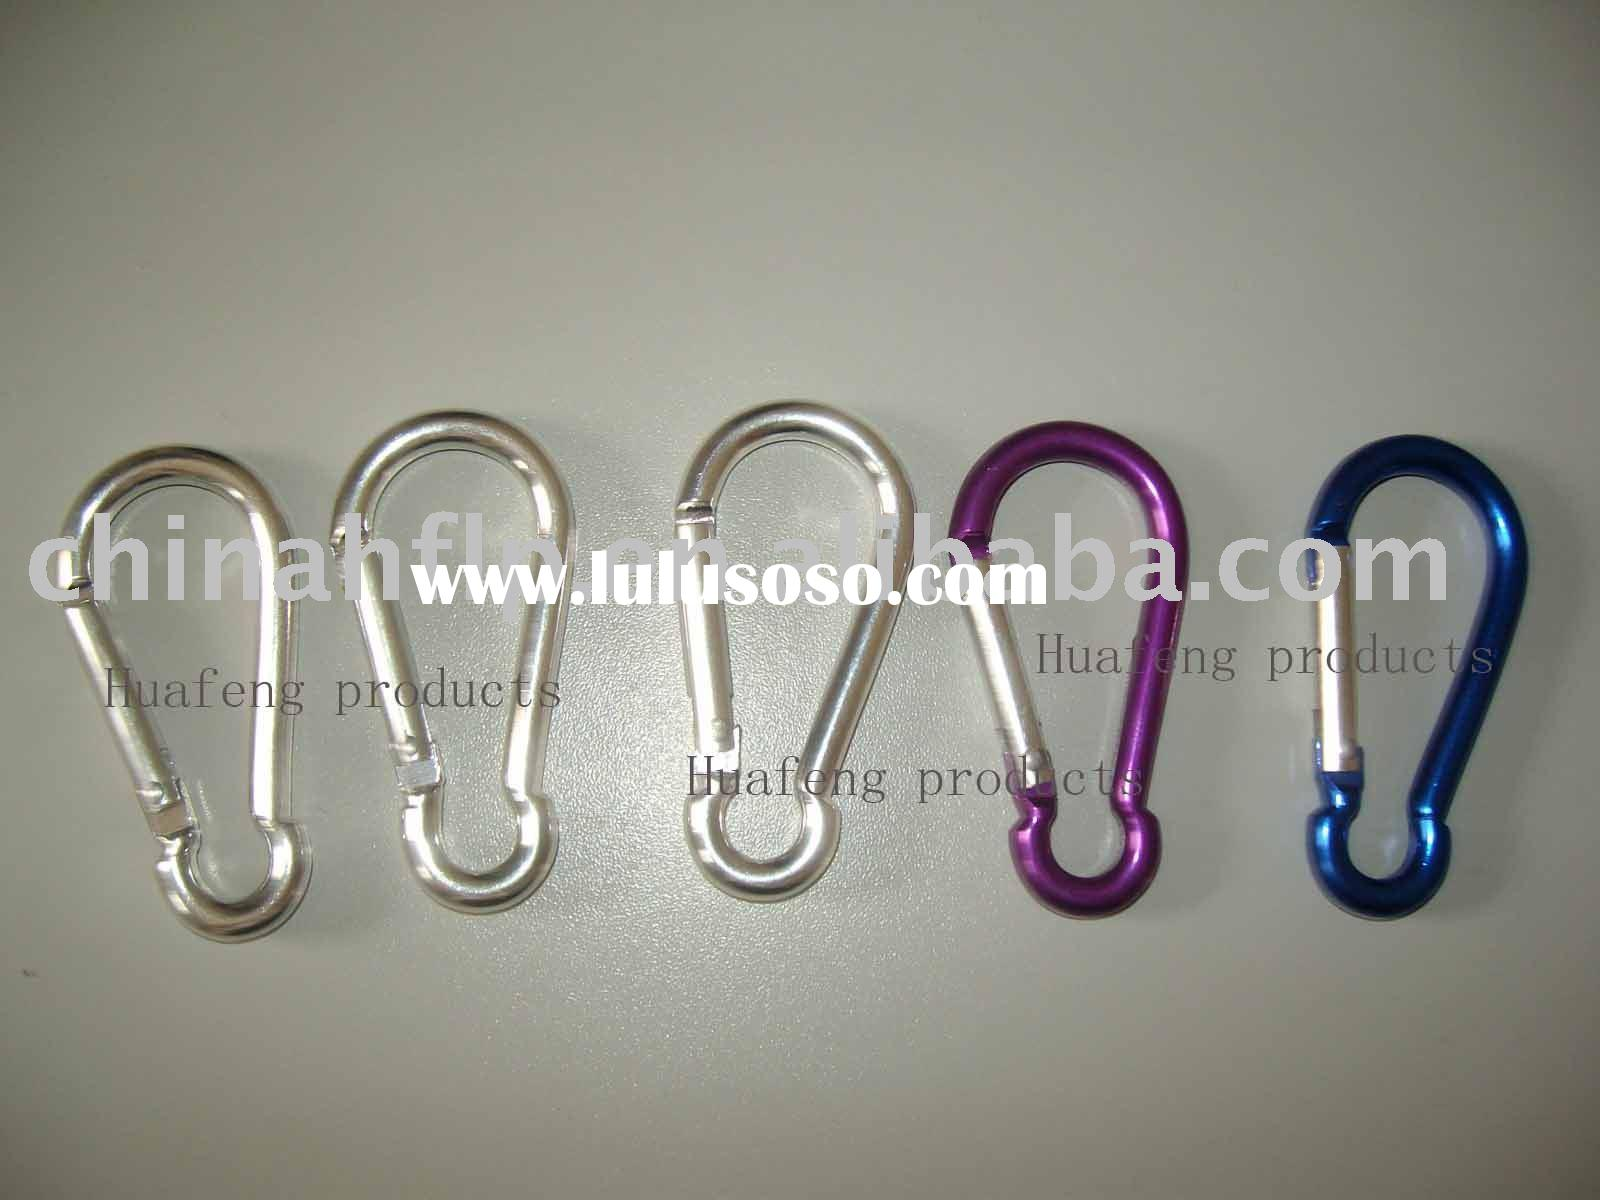 colored ss aluminum carabiner spring snap hook